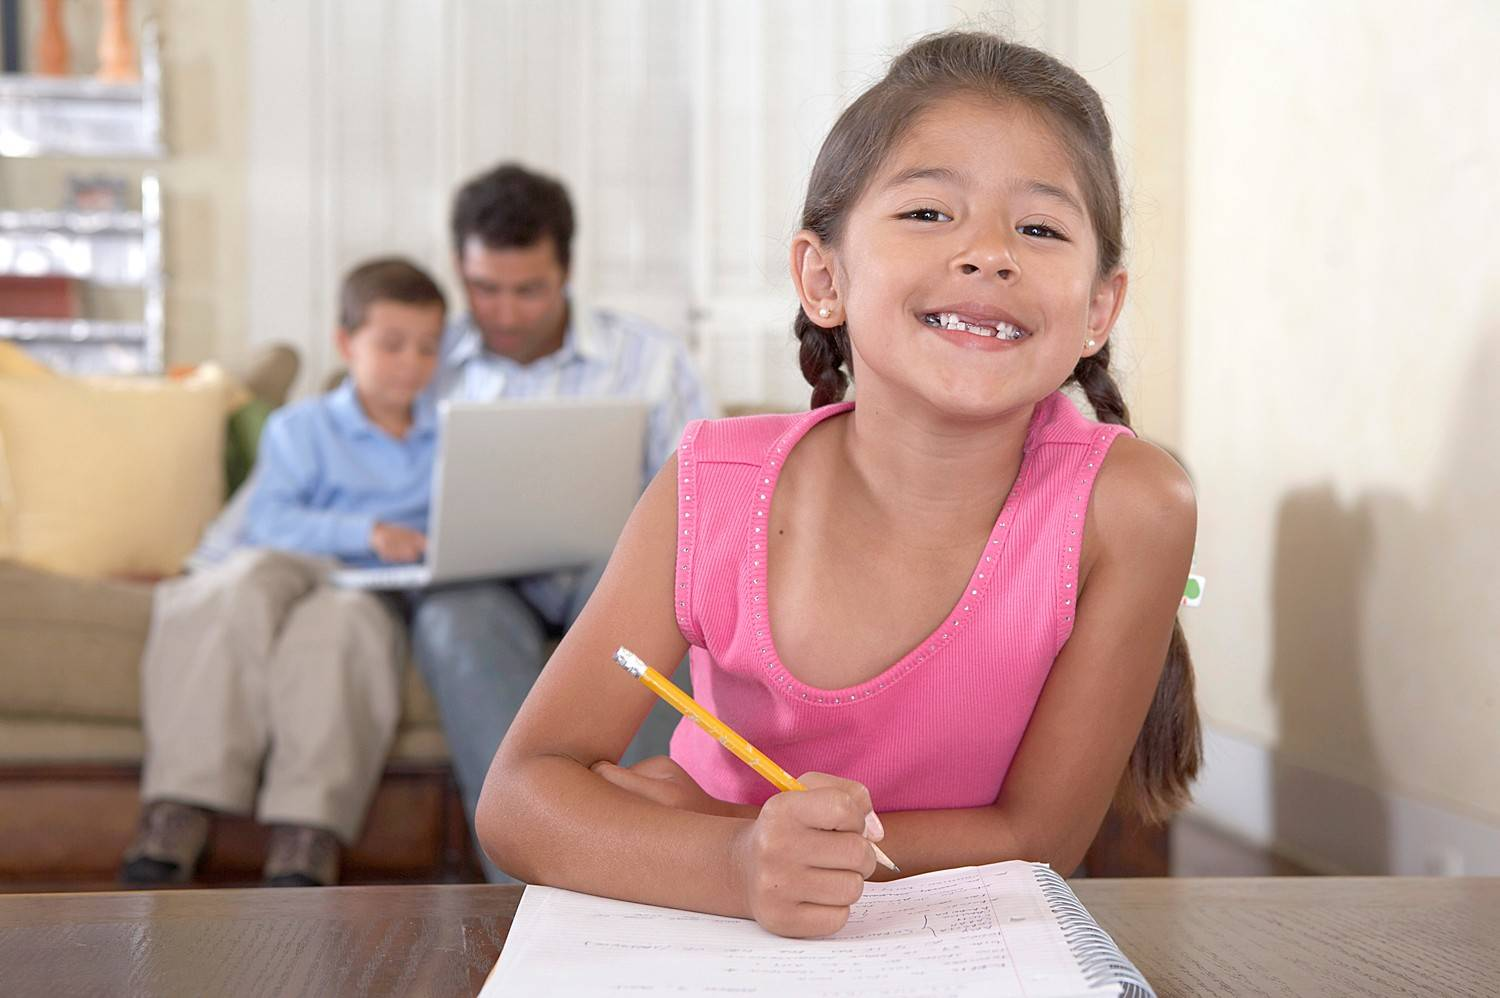 Is it truly possible to help your child smile while doing homework? Our Ken Potts says it is.